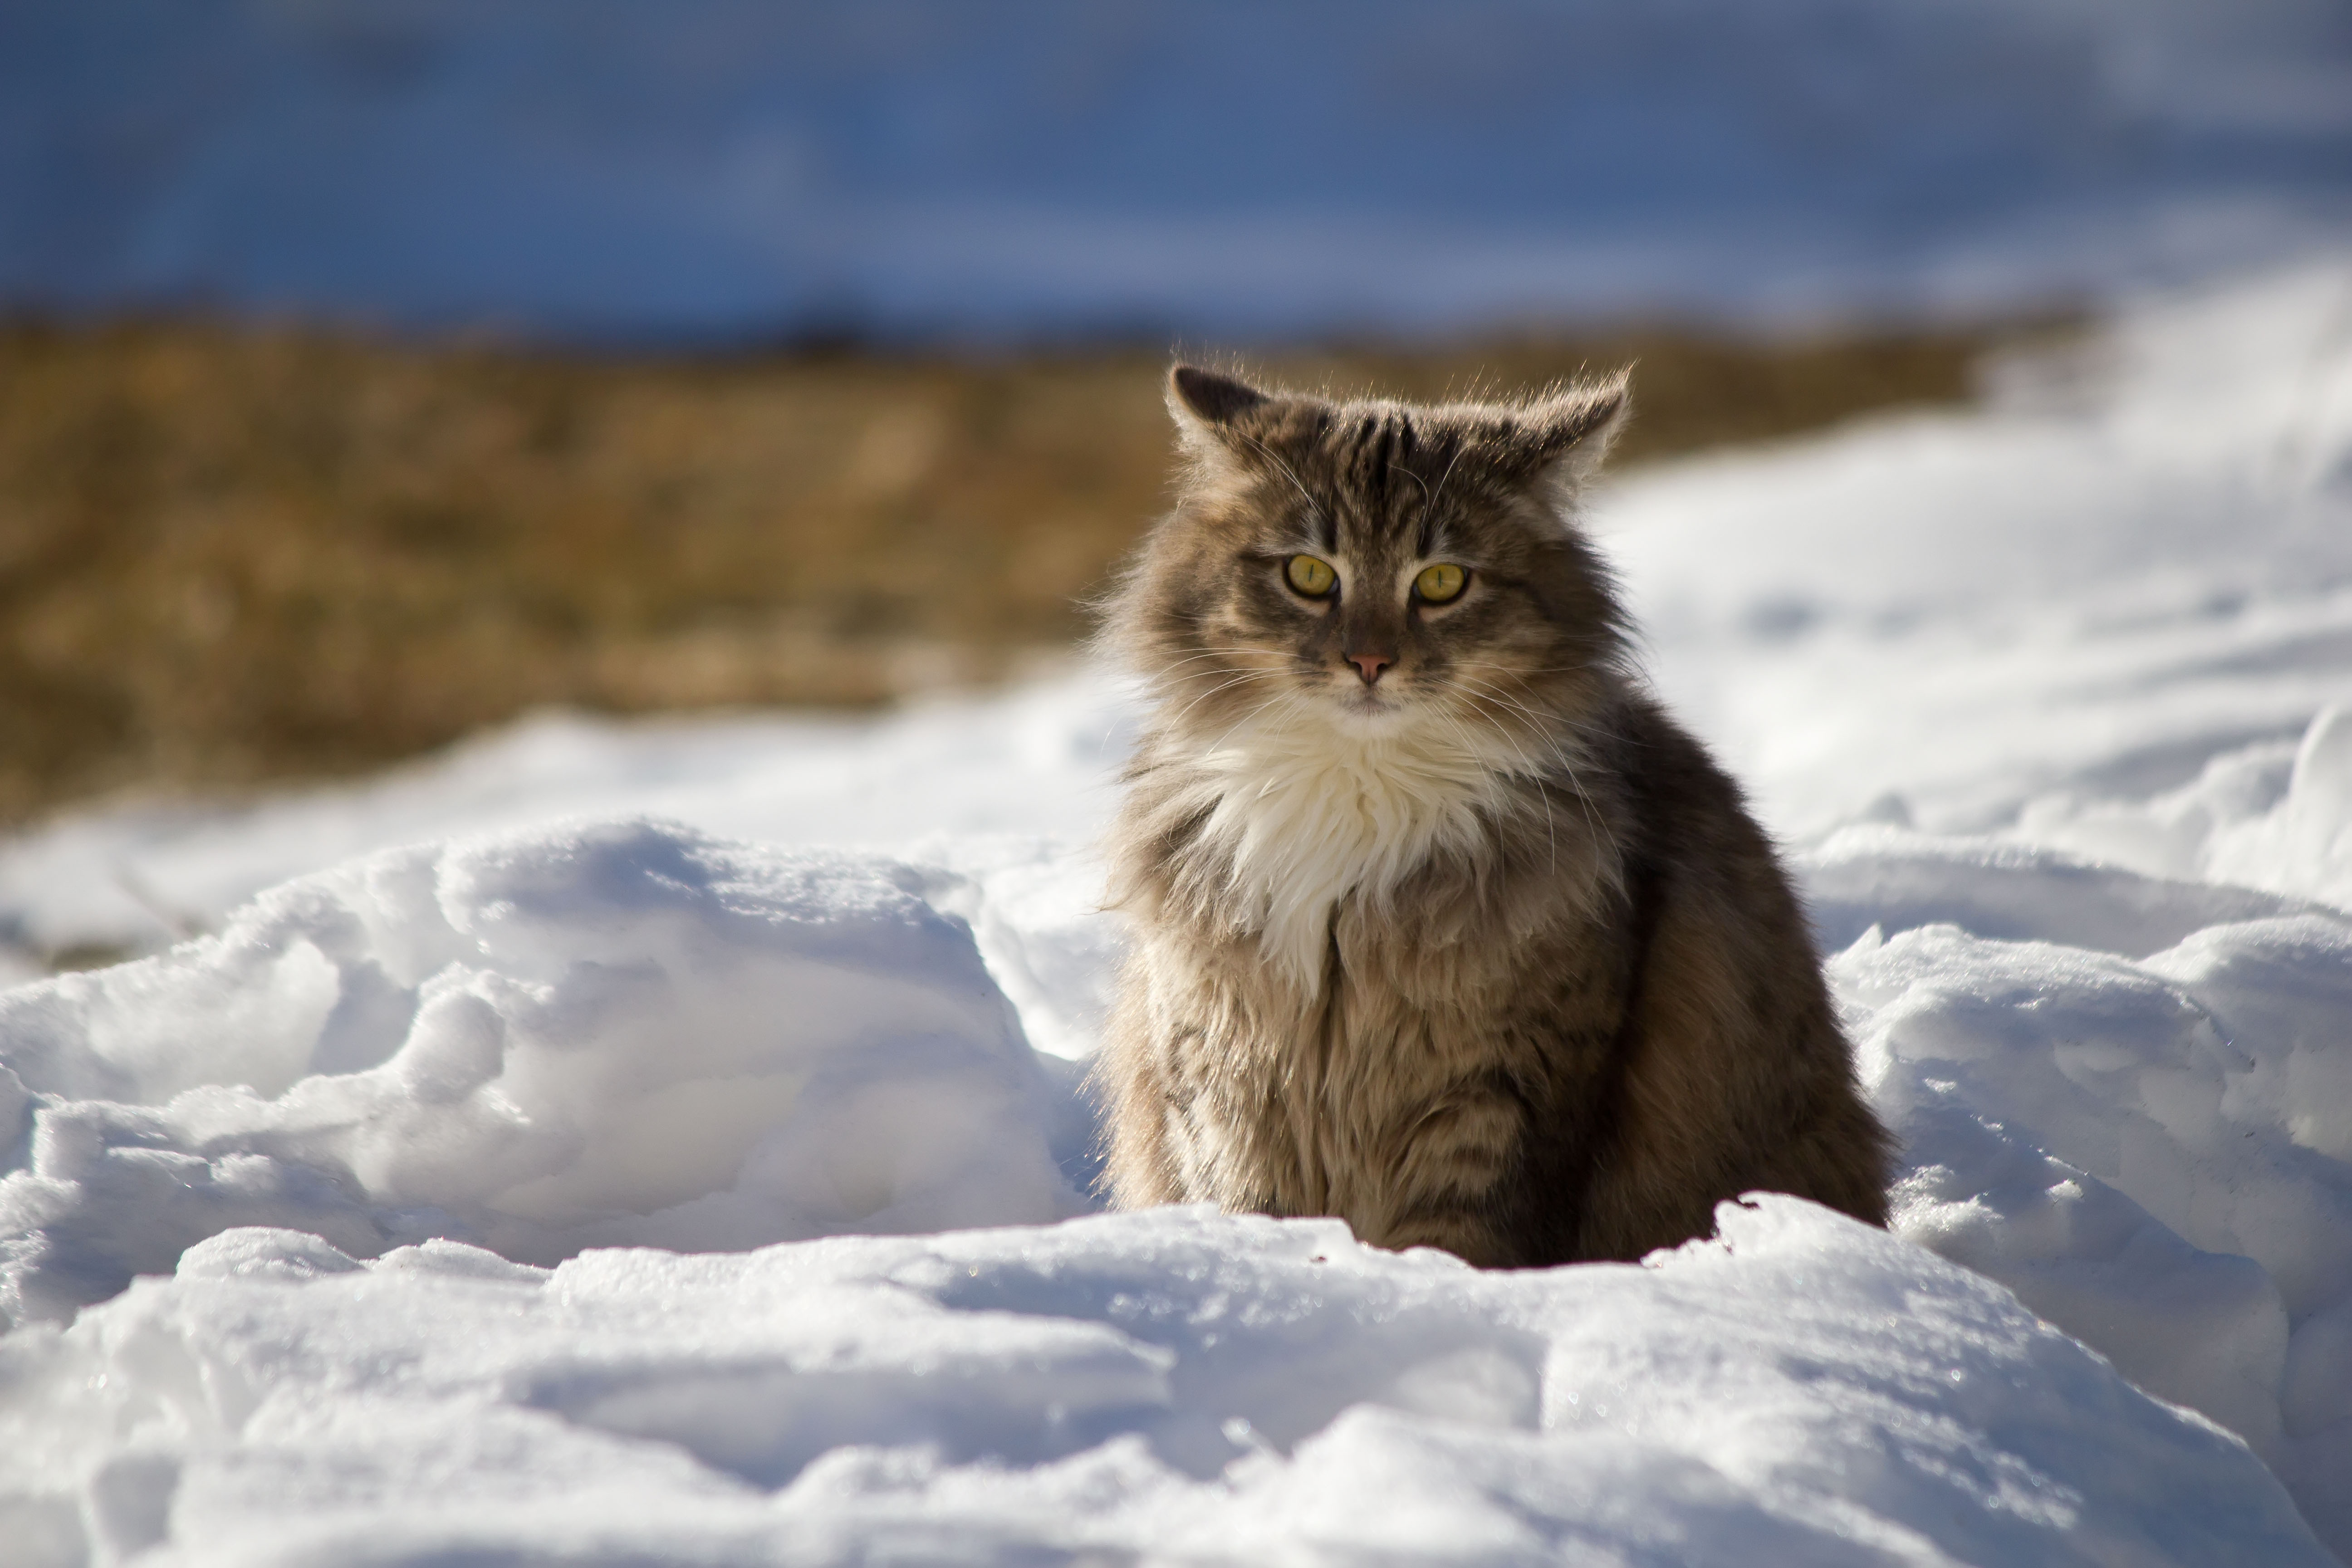 118968 download wallpaper Animals, Cat, Winter, Fluffy, Snow screensavers and pictures for free